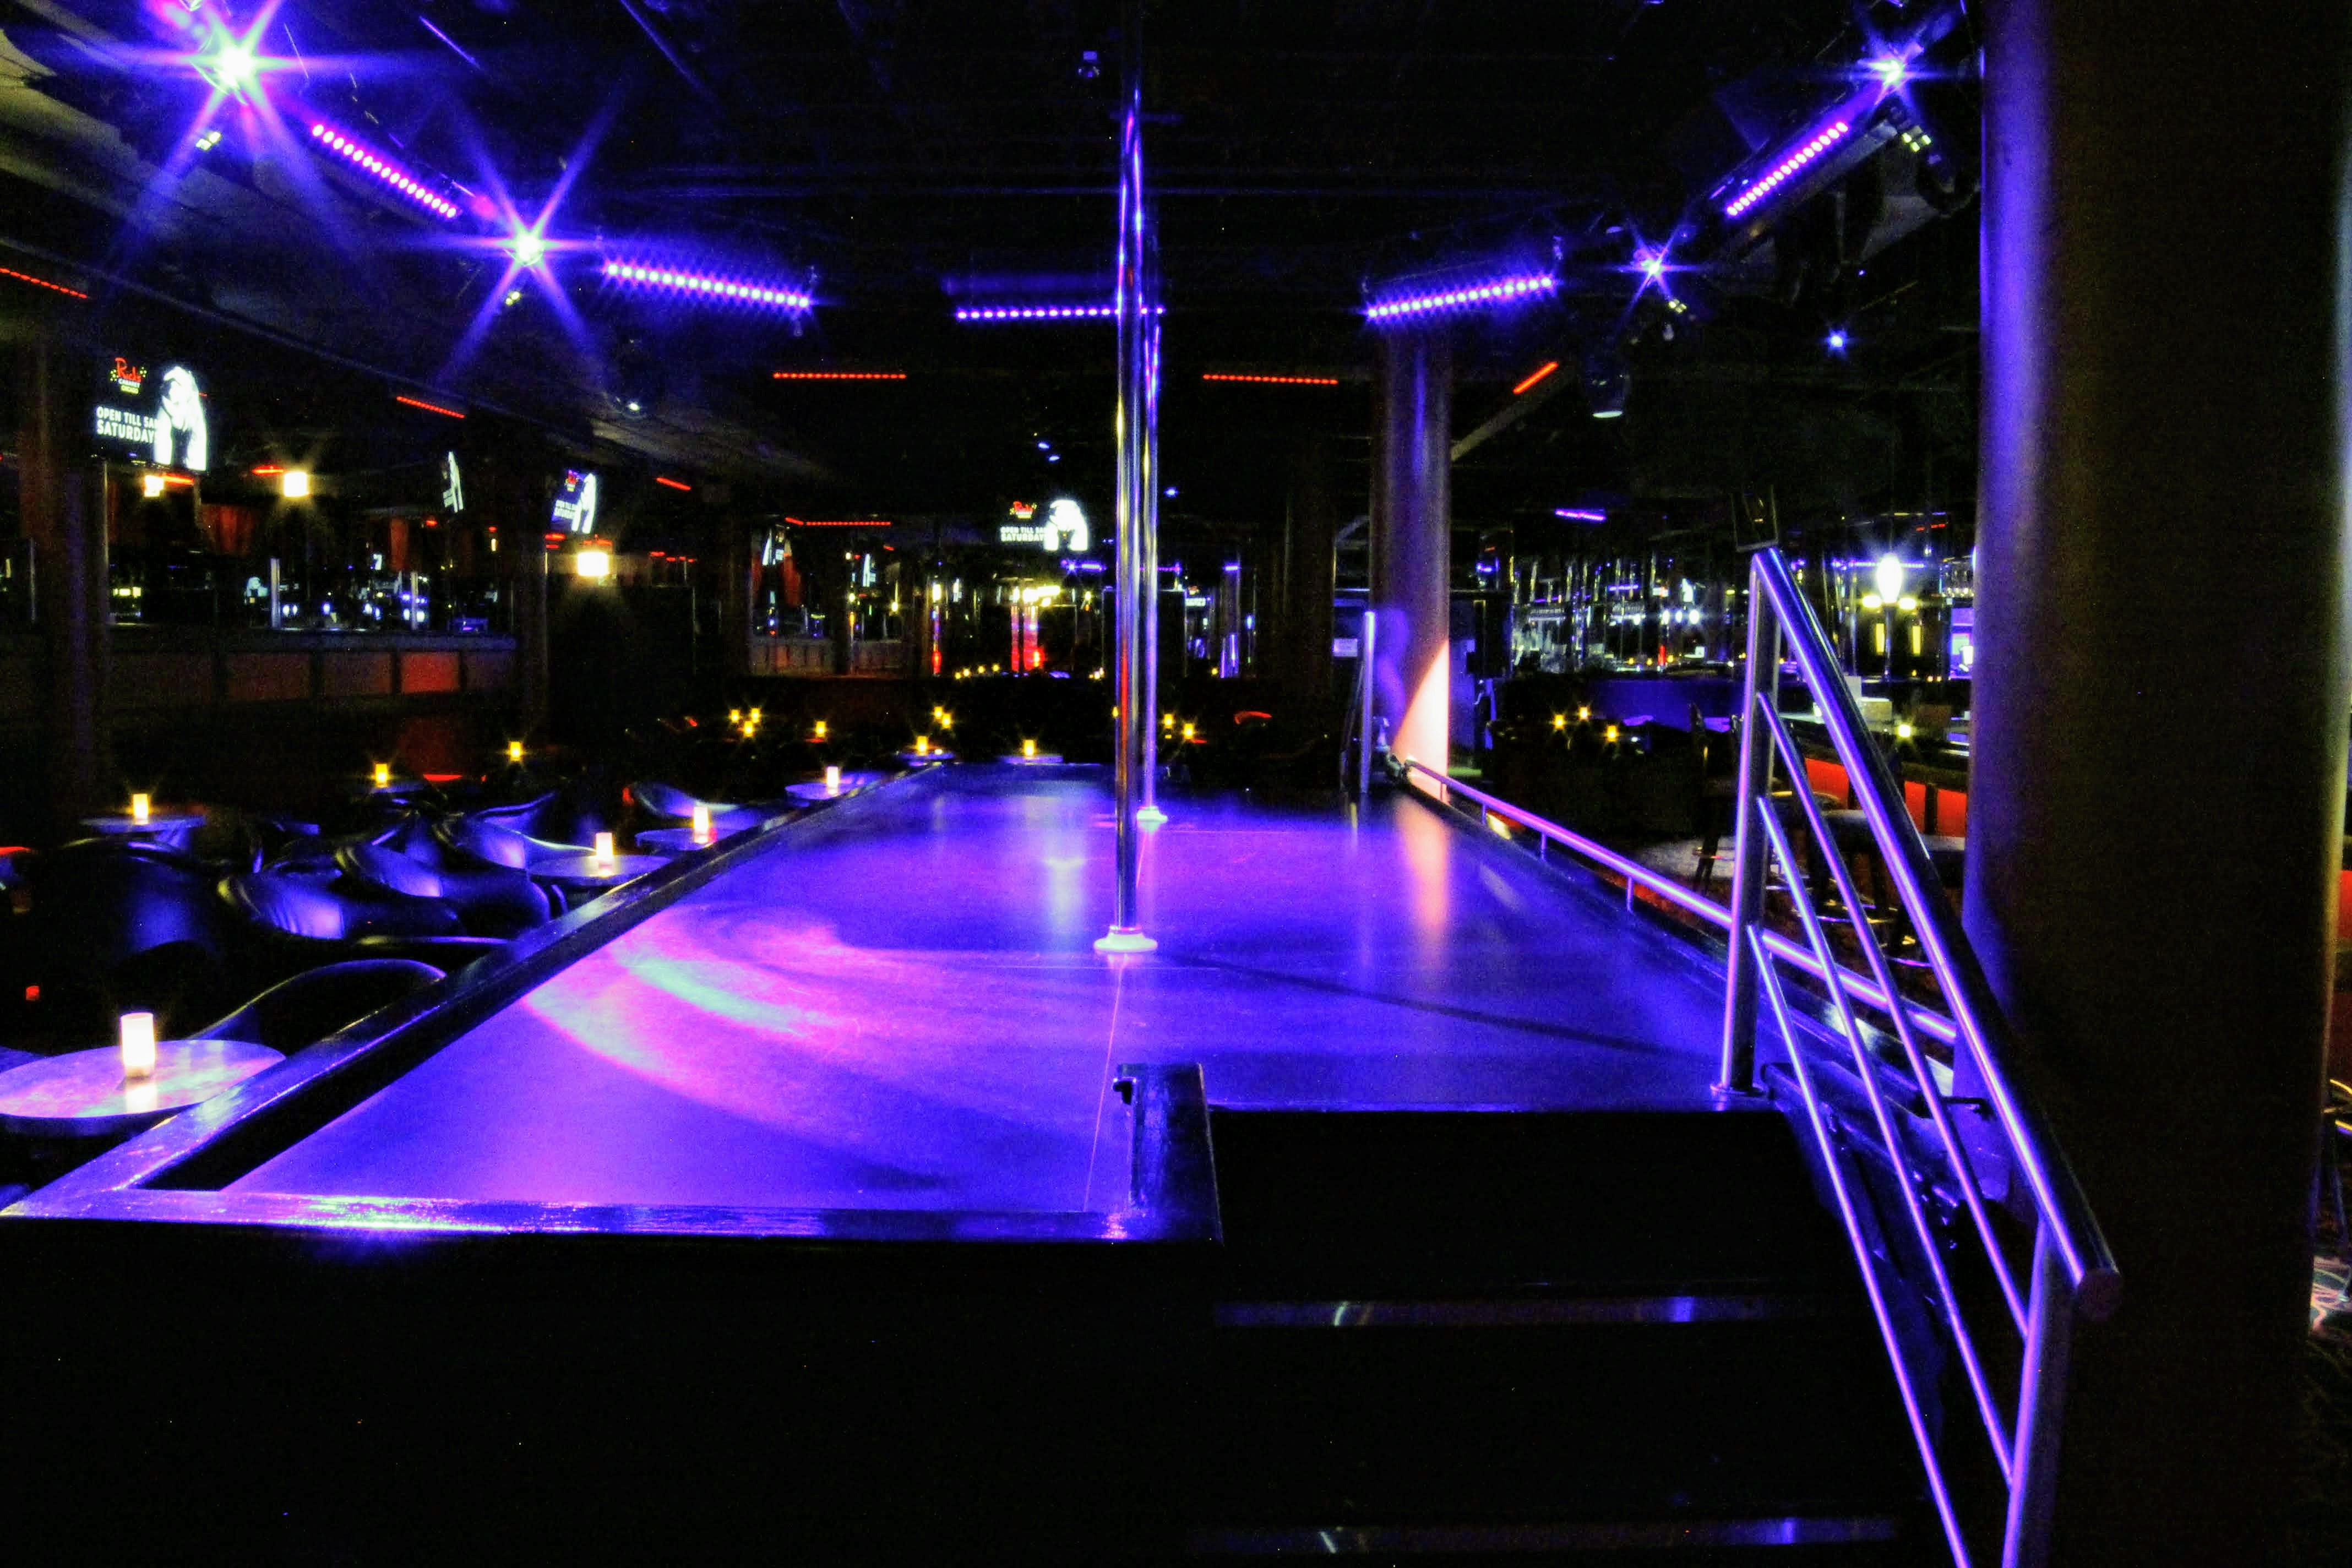 An empty strip club with a stage and pole surrounded by chairs.